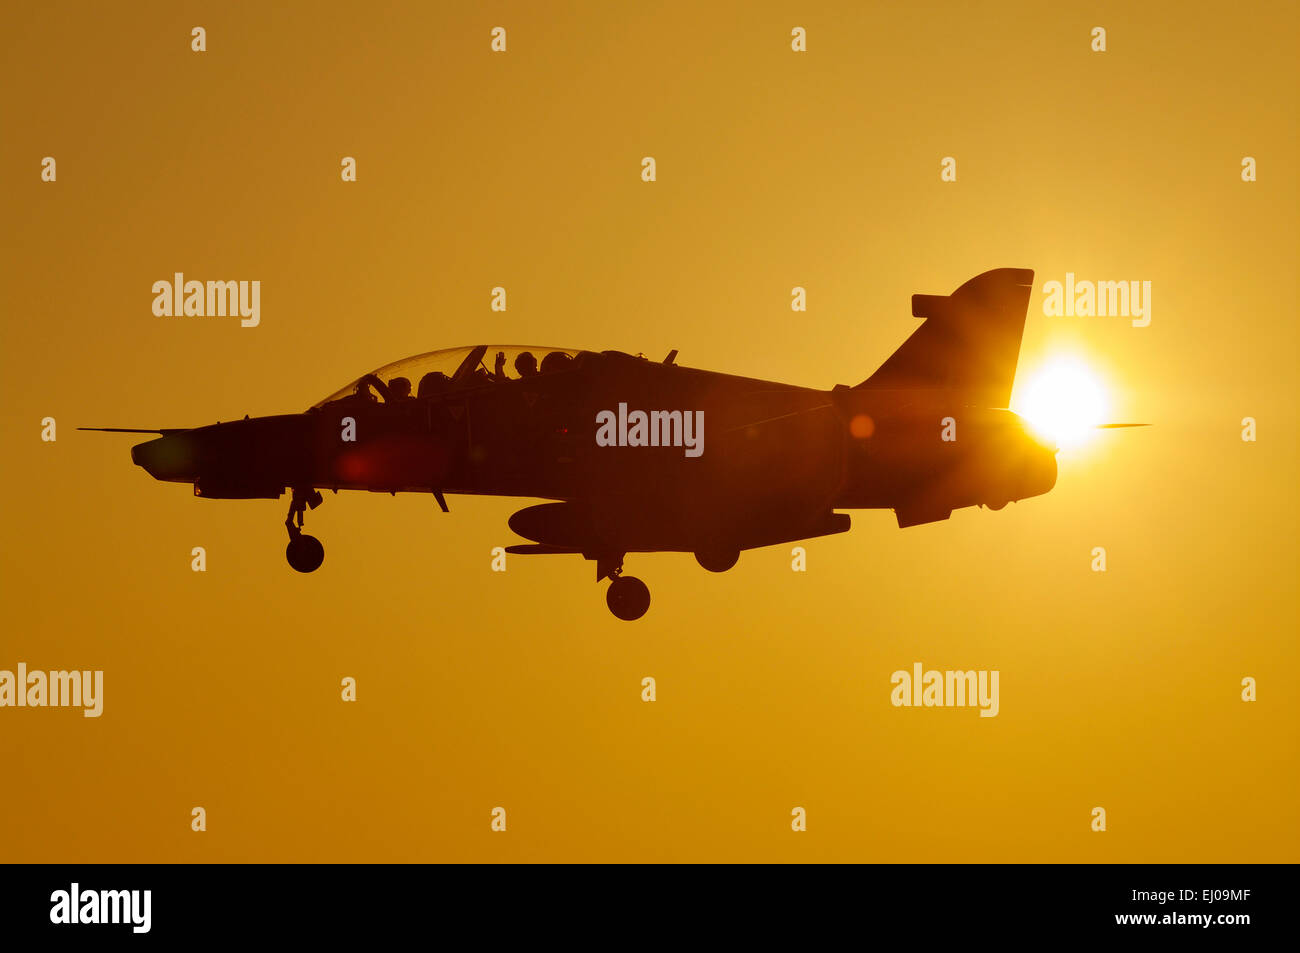 Anglesey, Hawk, jet, aircraft, RAF Valley; Anglesey - Stock Image